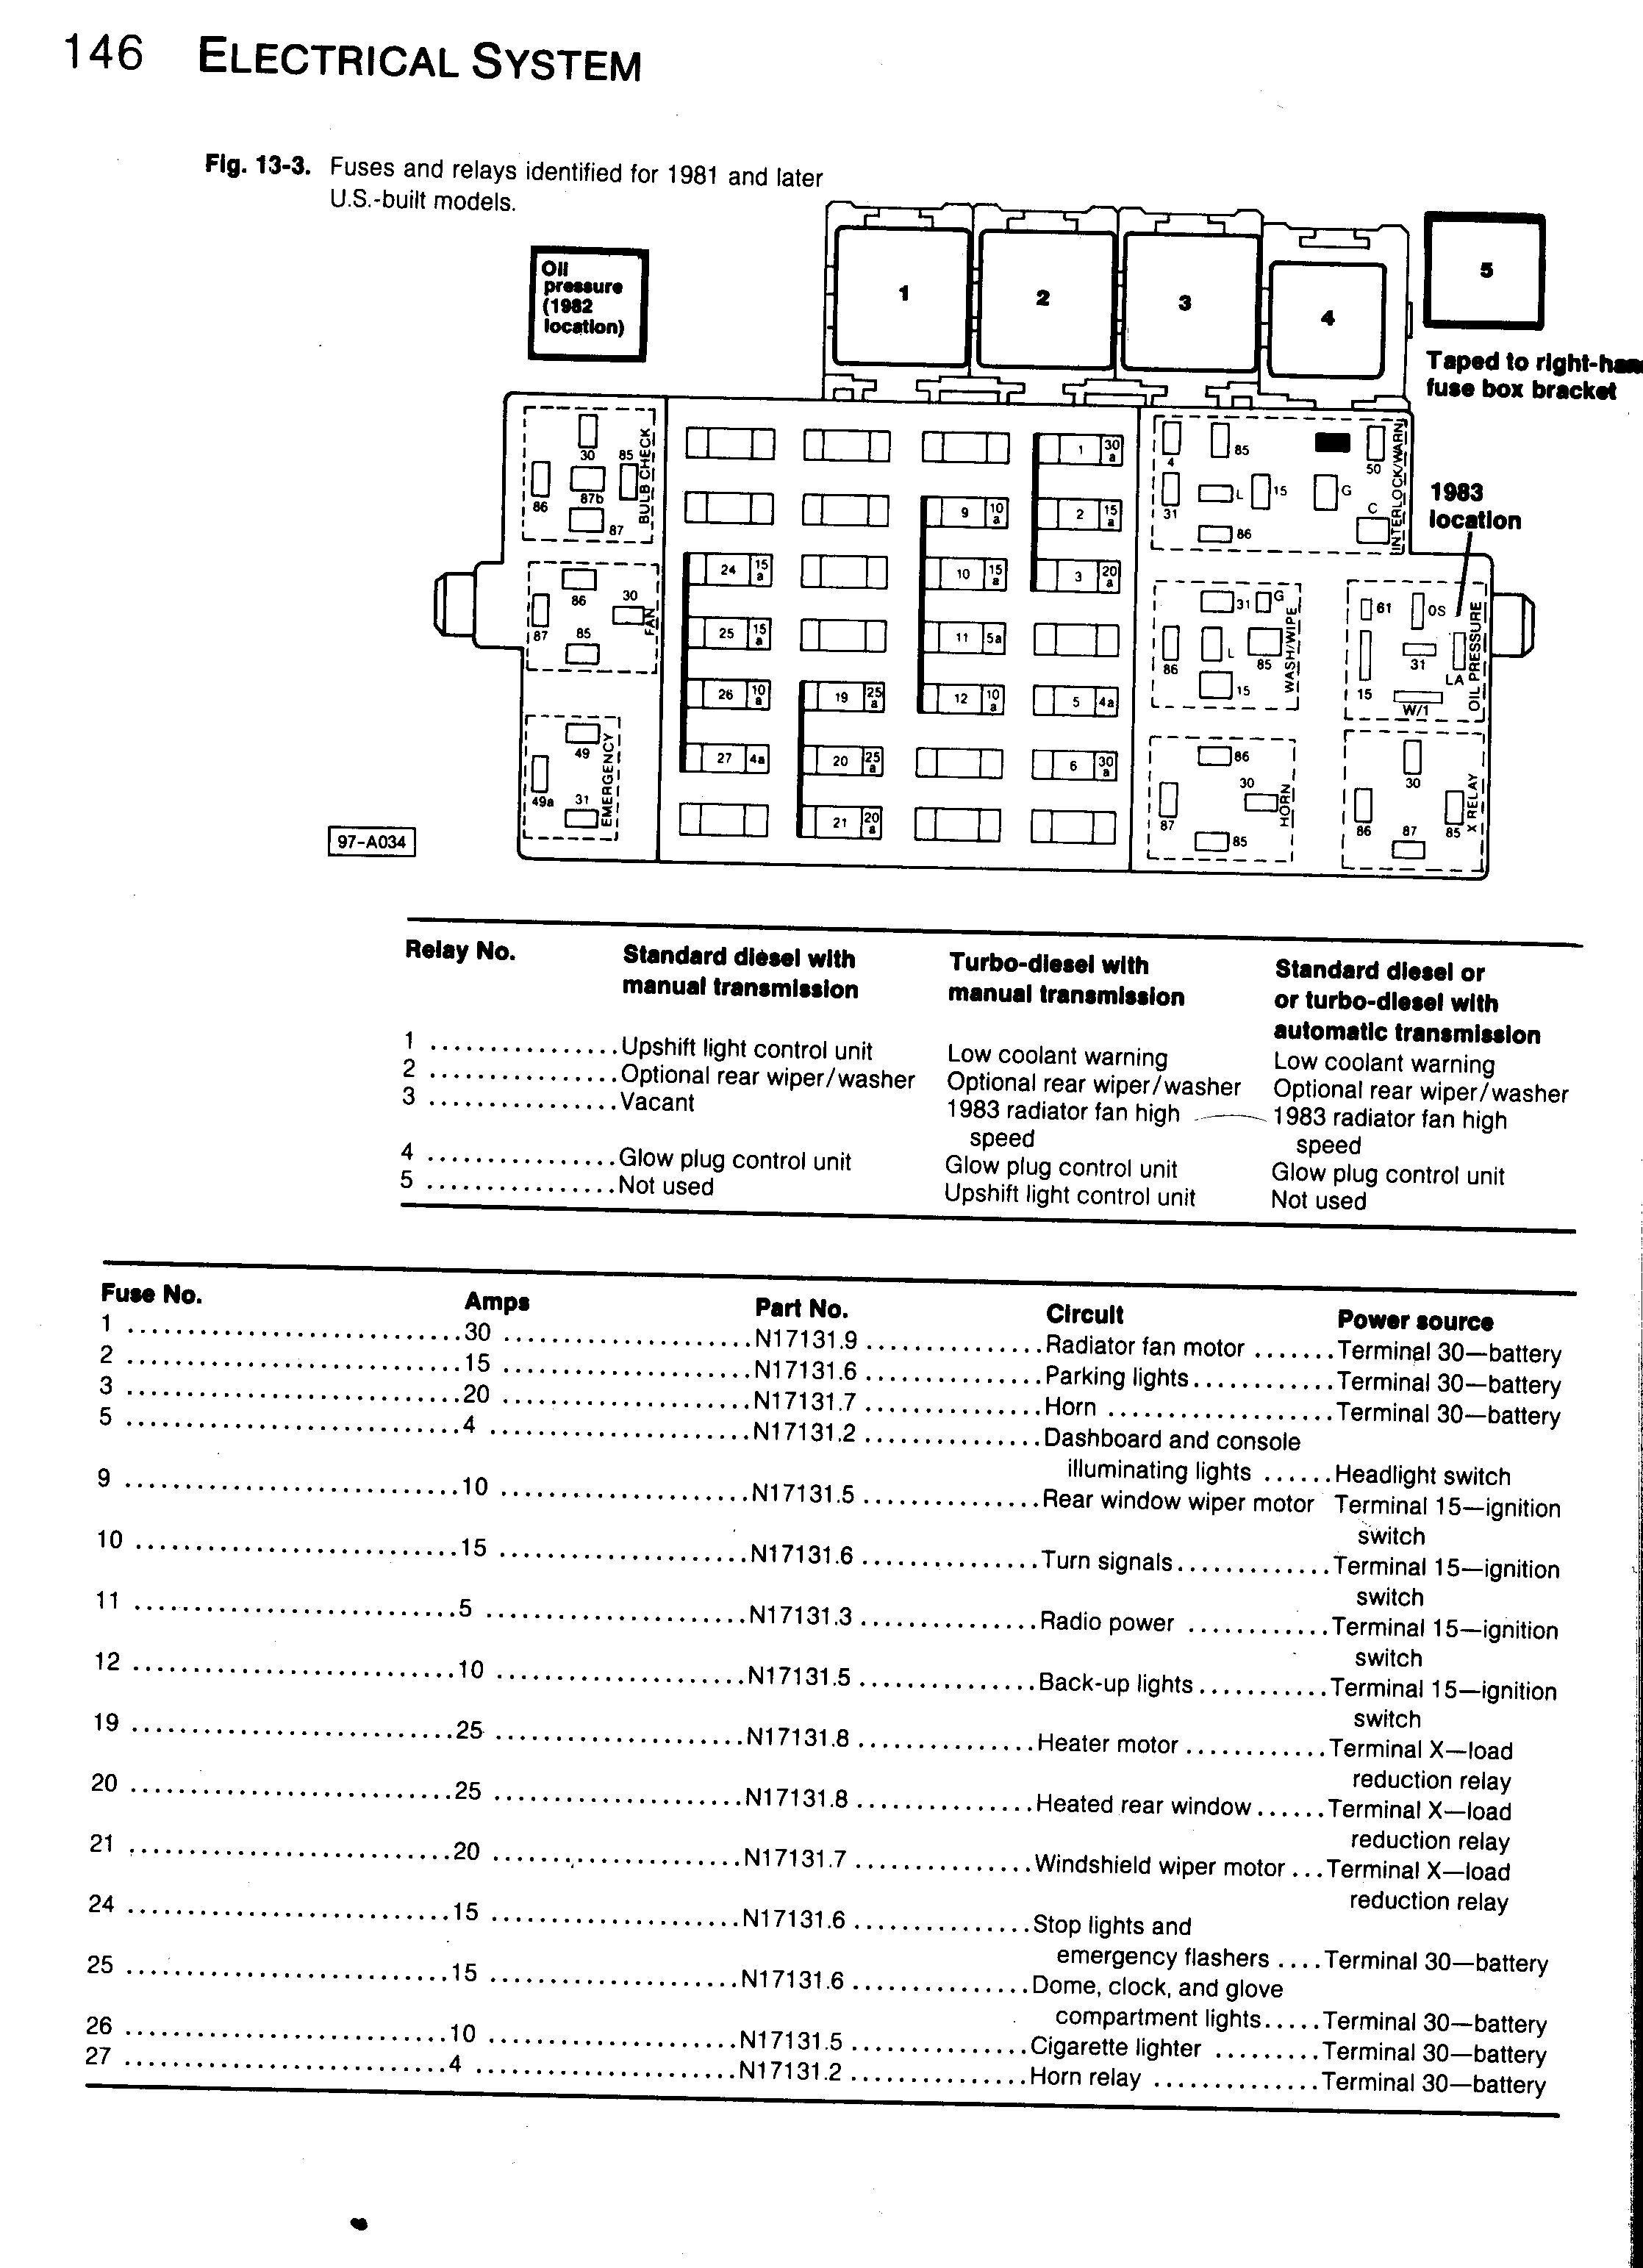 2001 volkswagen gti fuse diagram detailed schematics diagram rh antonartgallery com 2001 jetta tdi fuse box diagram 2001 vw jetta 2.0 fuse box diagram